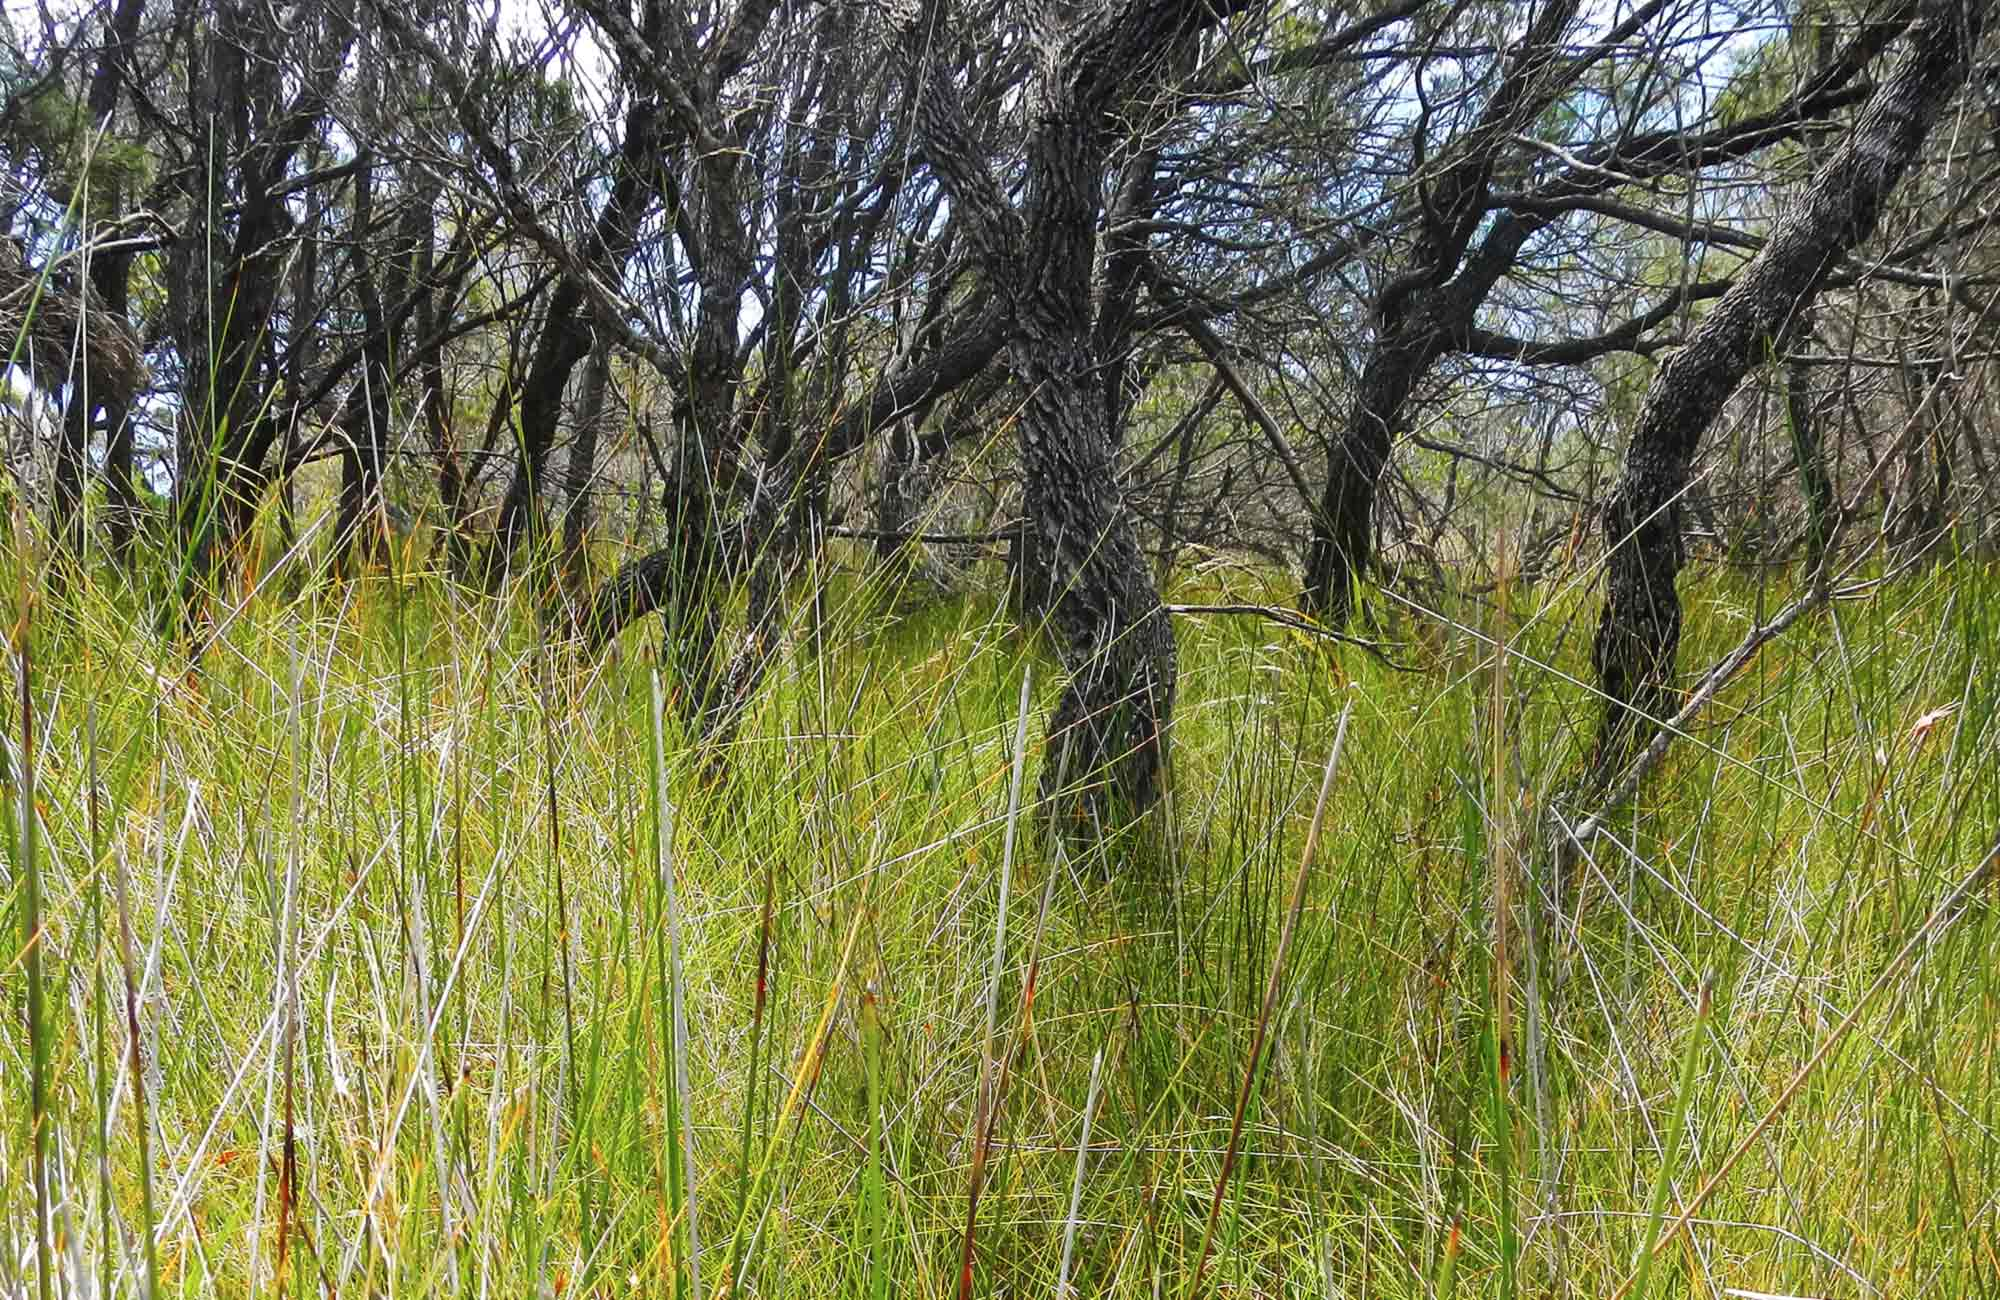 Swamp grass. Photo: Debby McGerty